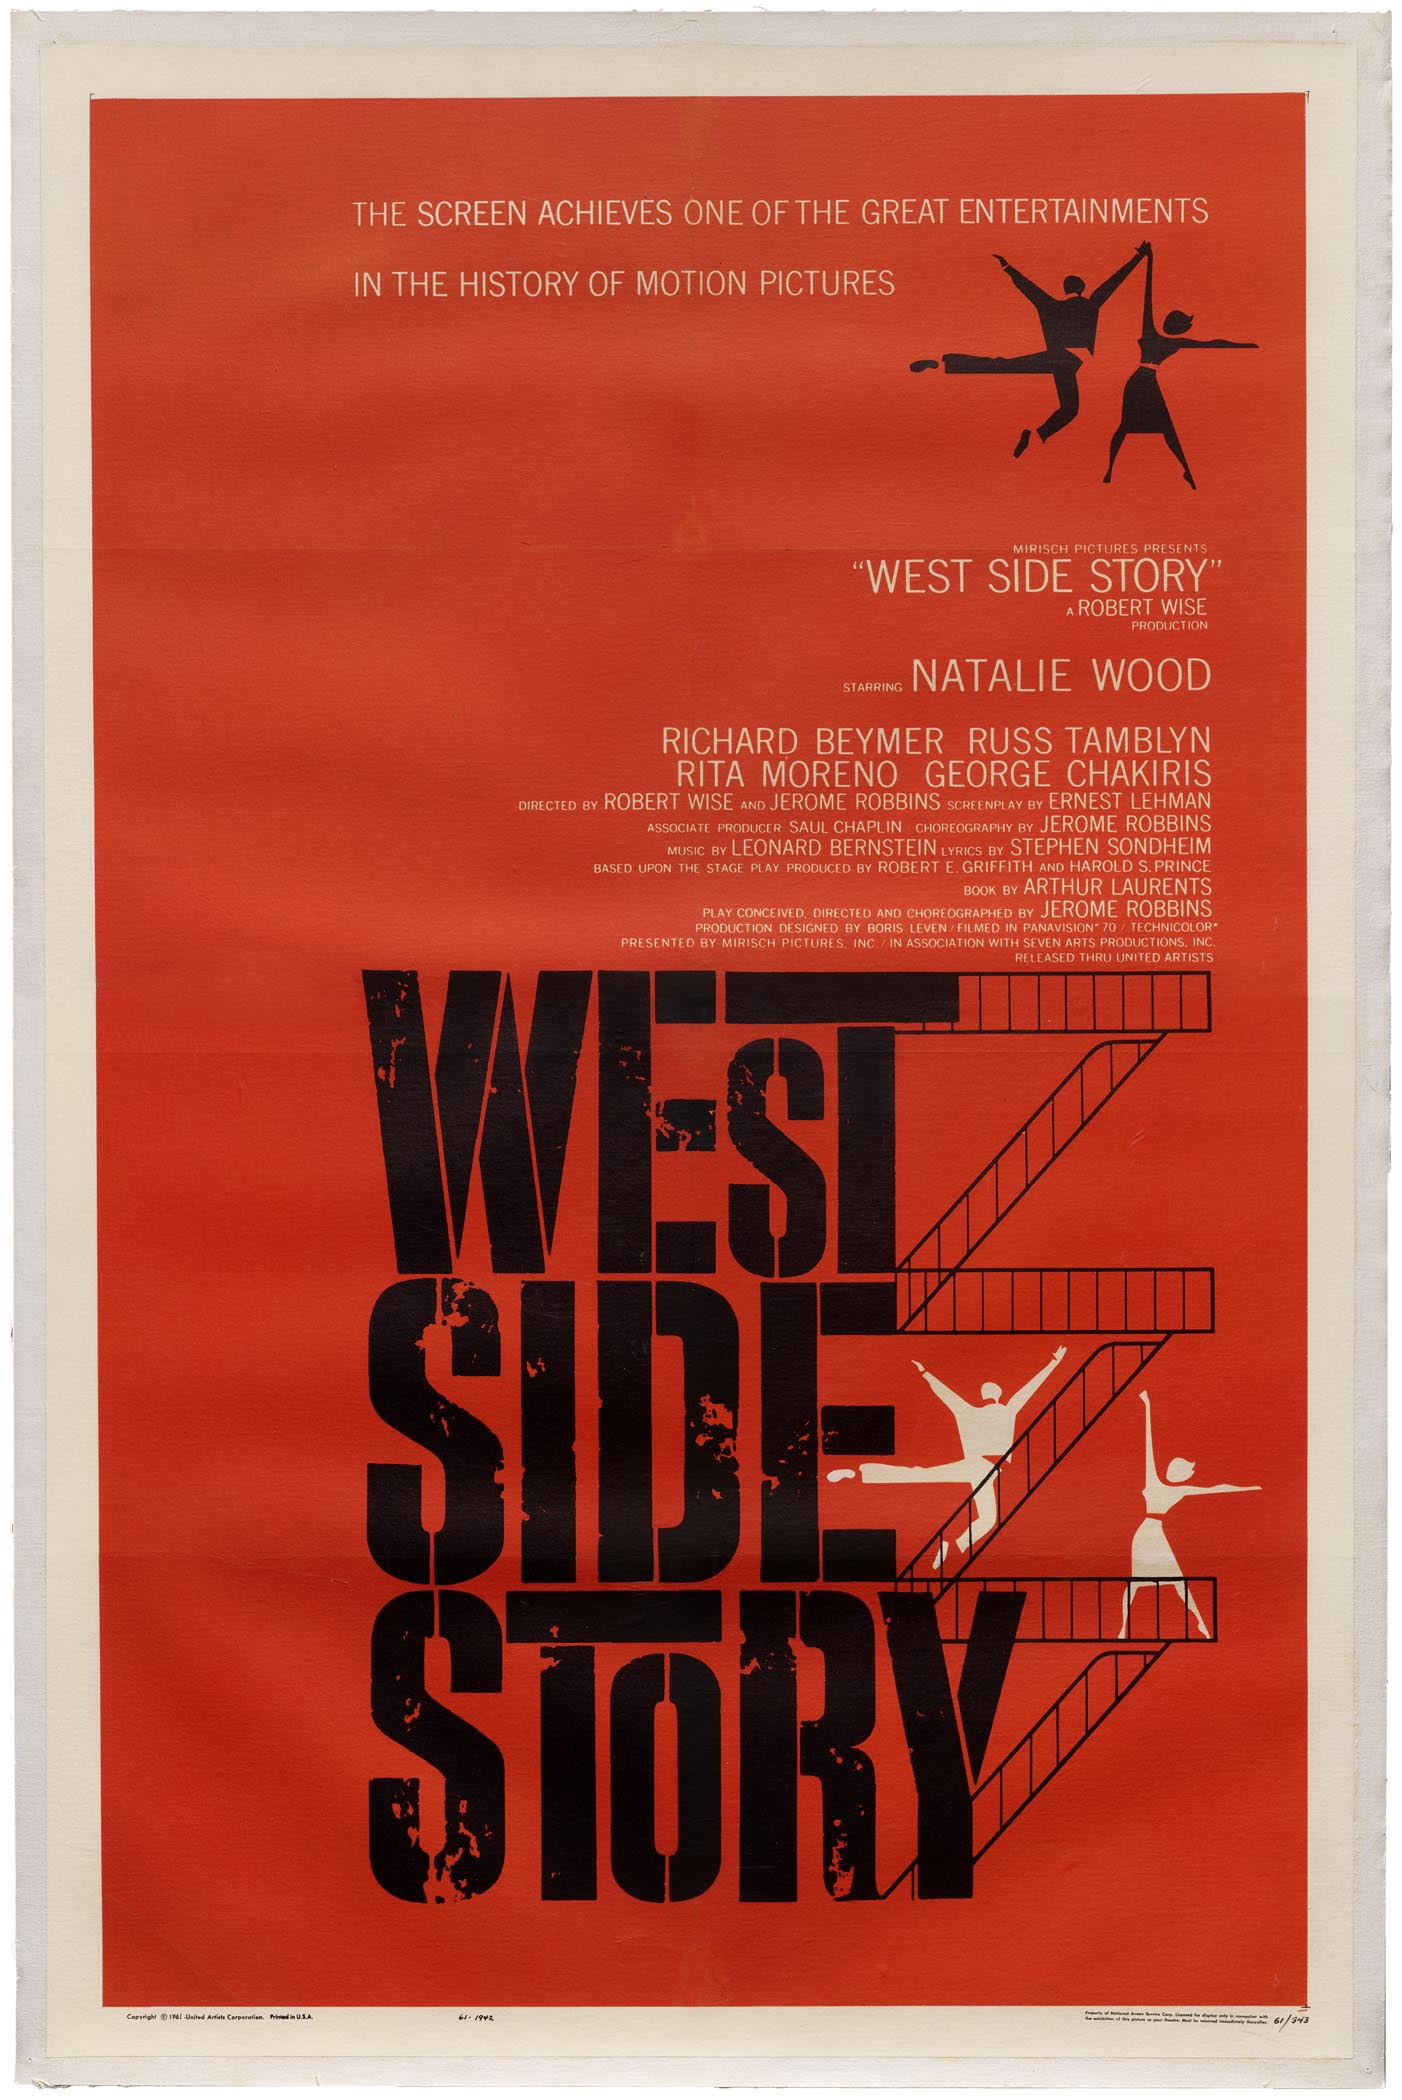 Joseph Caroff (not Saul Bass), West Side Story, 1961.